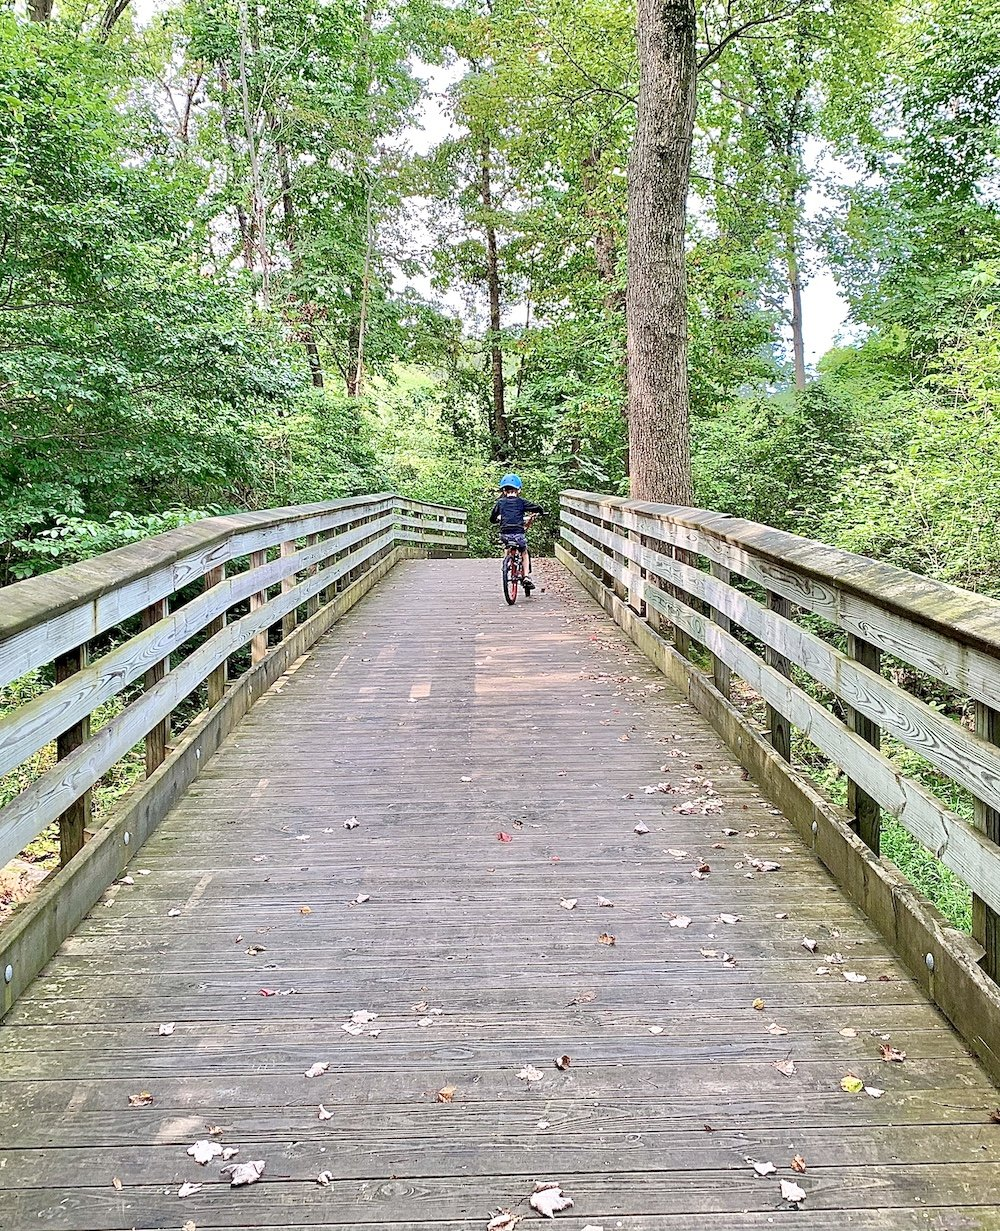 Boy riding a bike across a wooden bridge